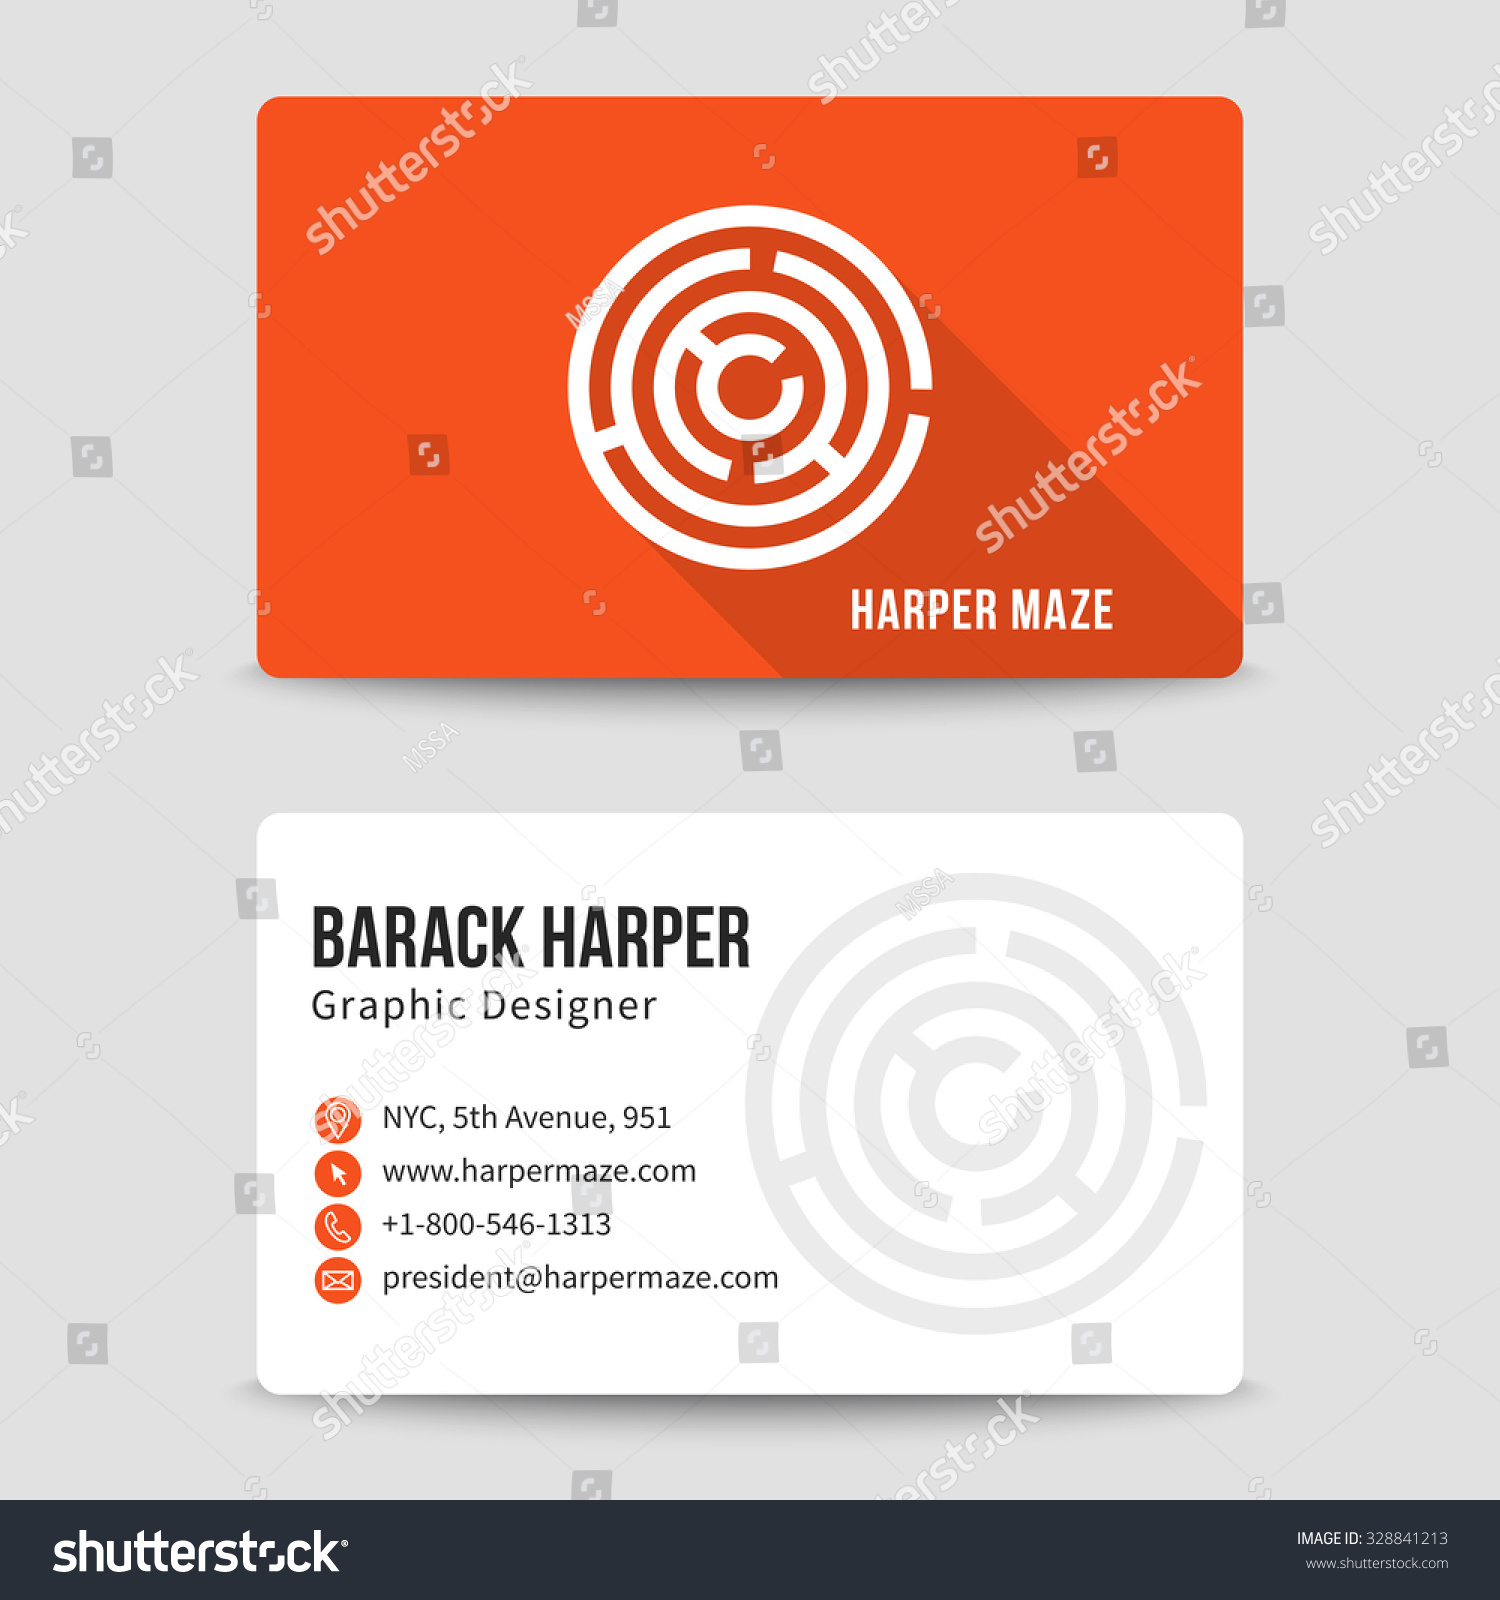 Modern business card vector template maze stock vector royalty free modern business card vector template with maze logo address and phone number website and fbccfo Gallery